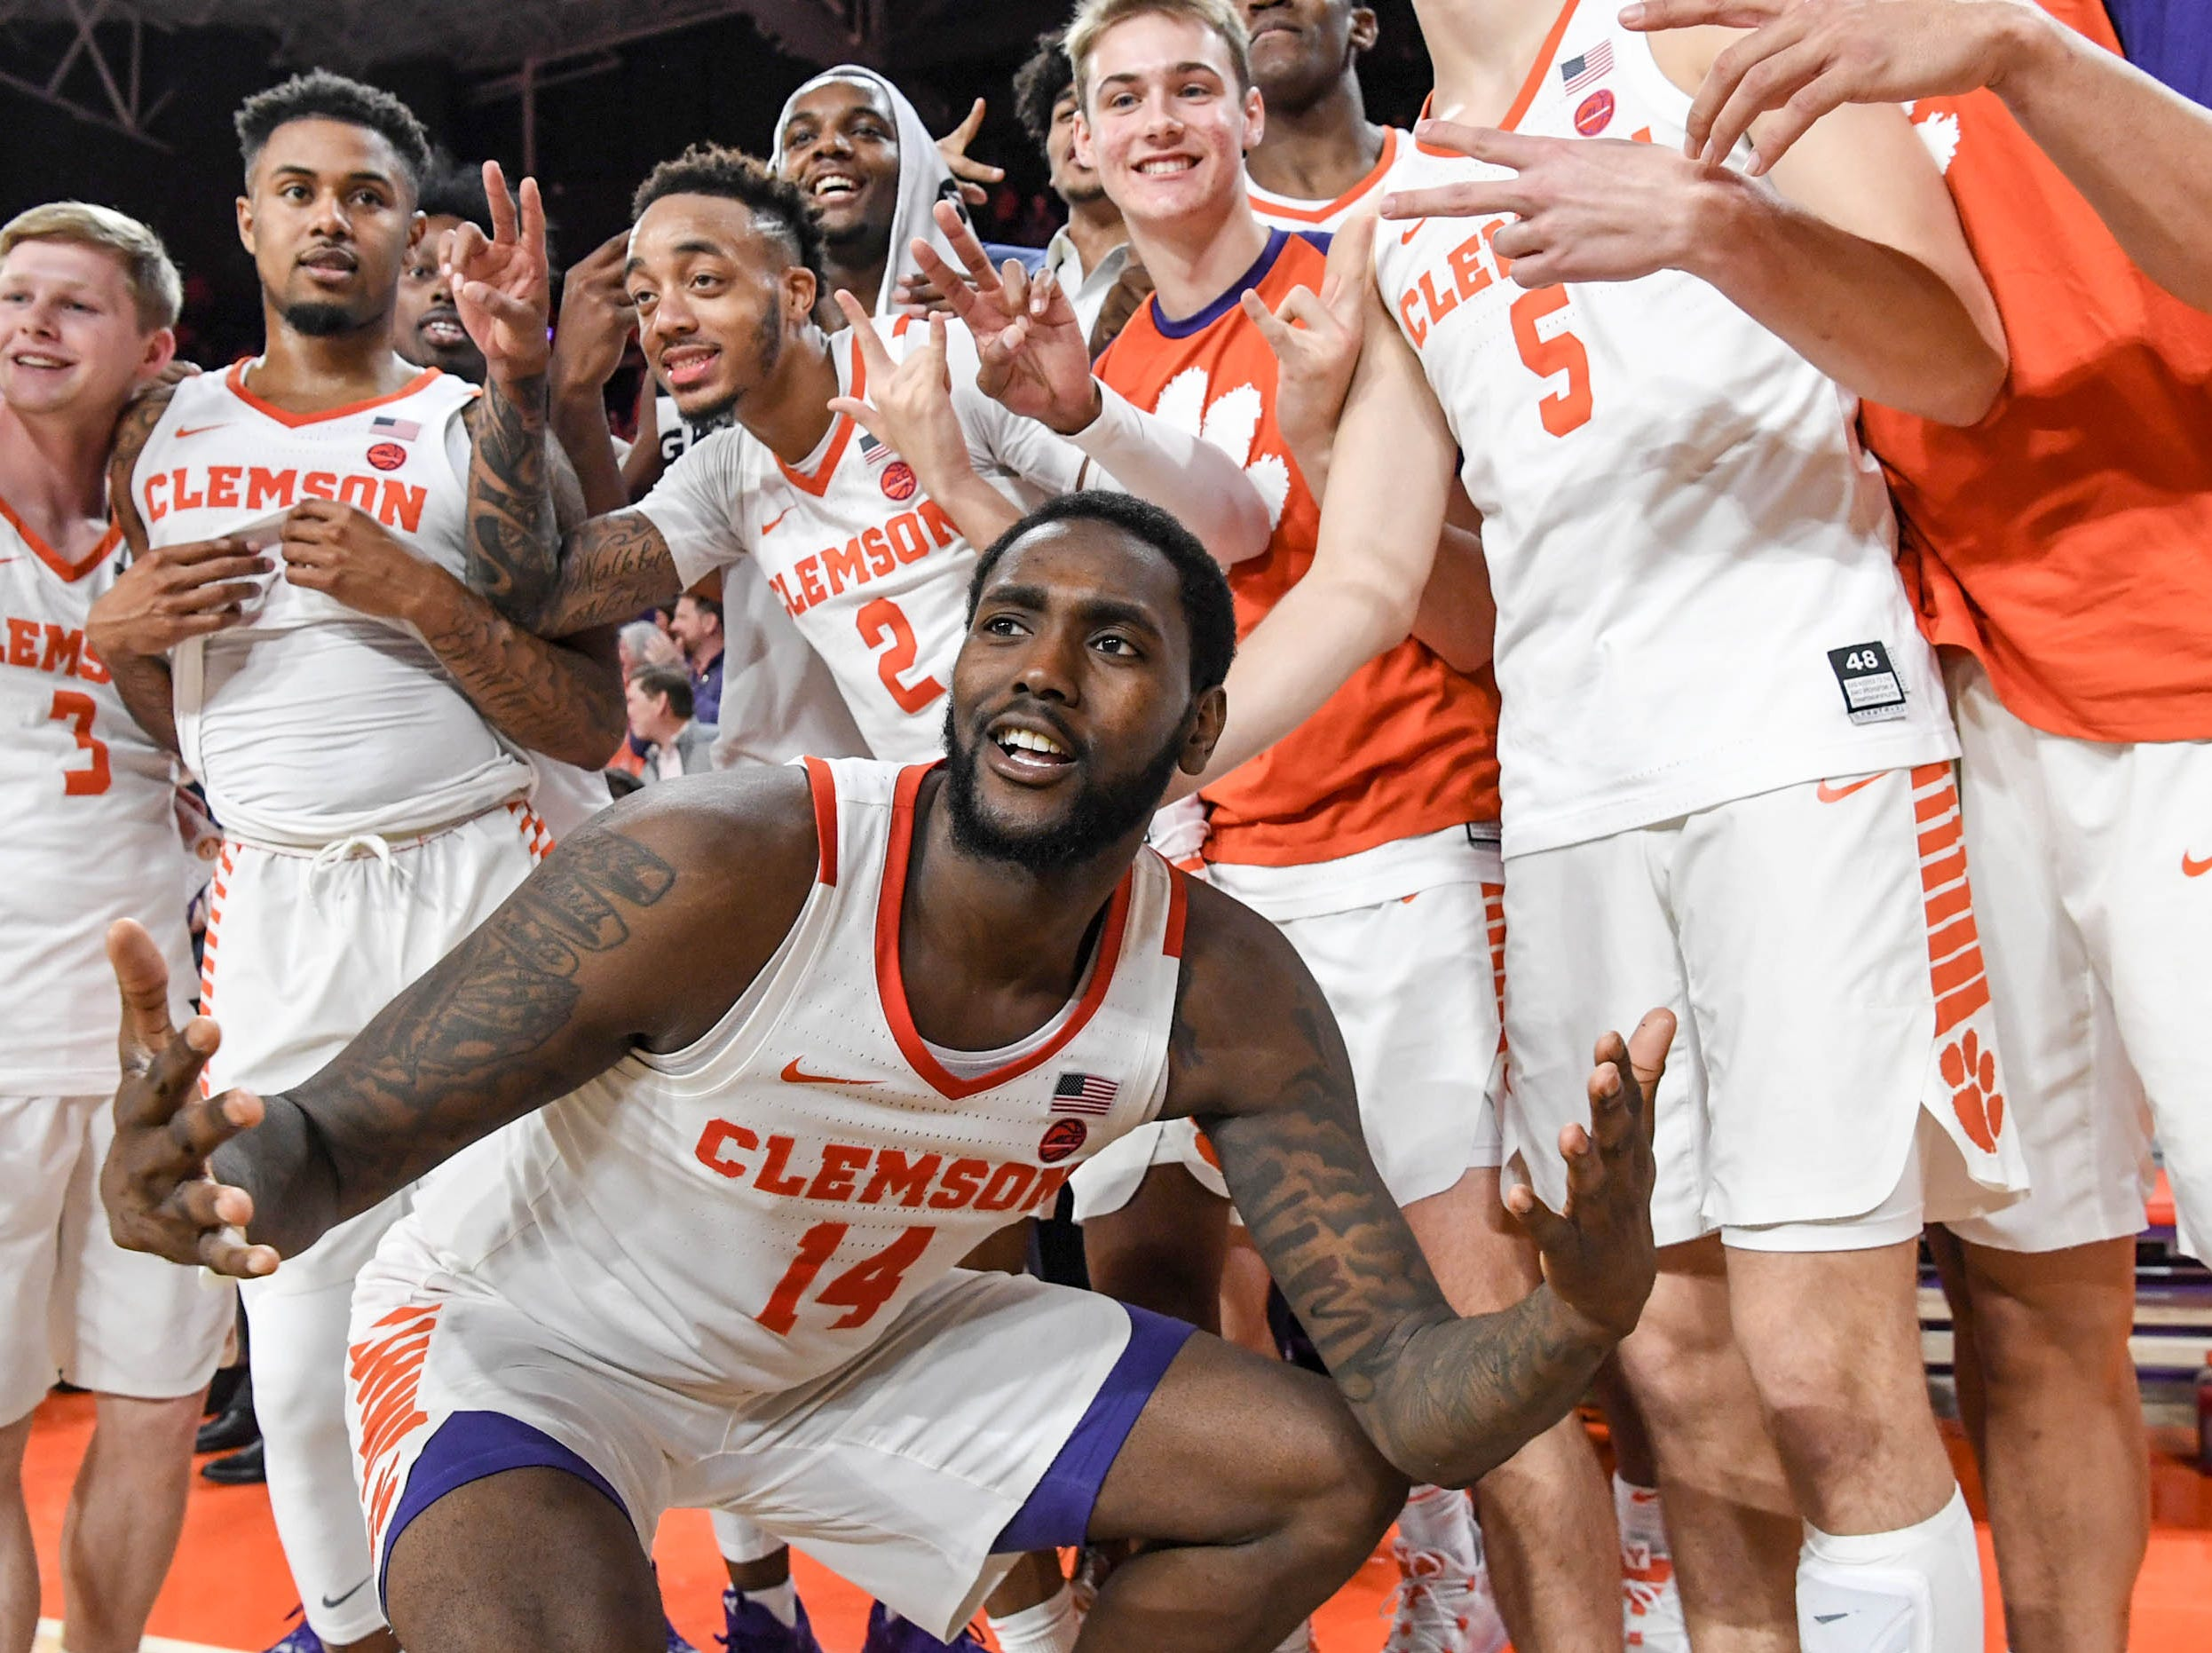 Clemson players celebrate a 67-55 win over Syracuse Saturday, March 9, 2019.